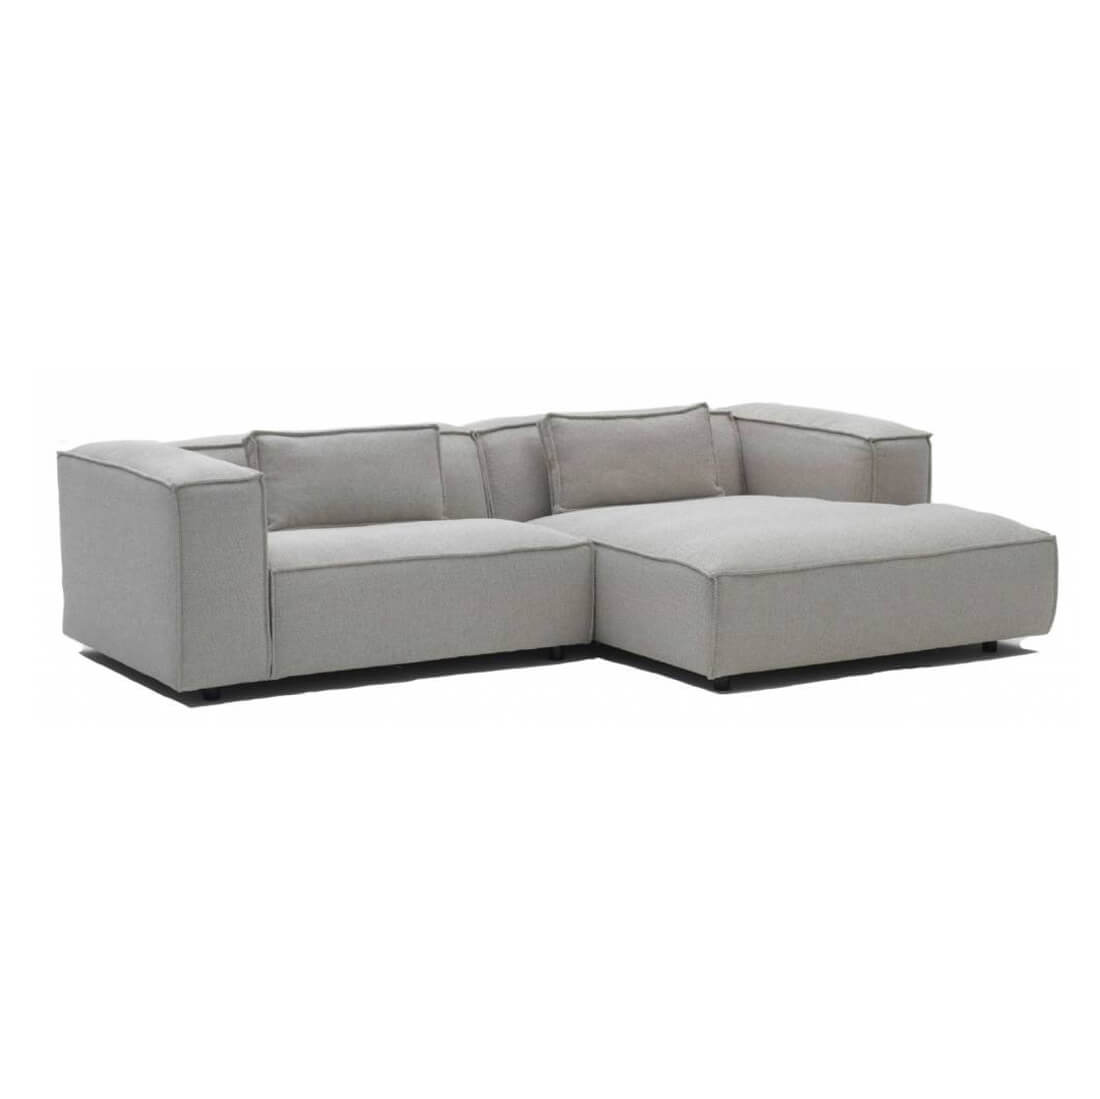 fest amsterdam sofa dunbar sectional images dein traumsofa  couch divian 43 2